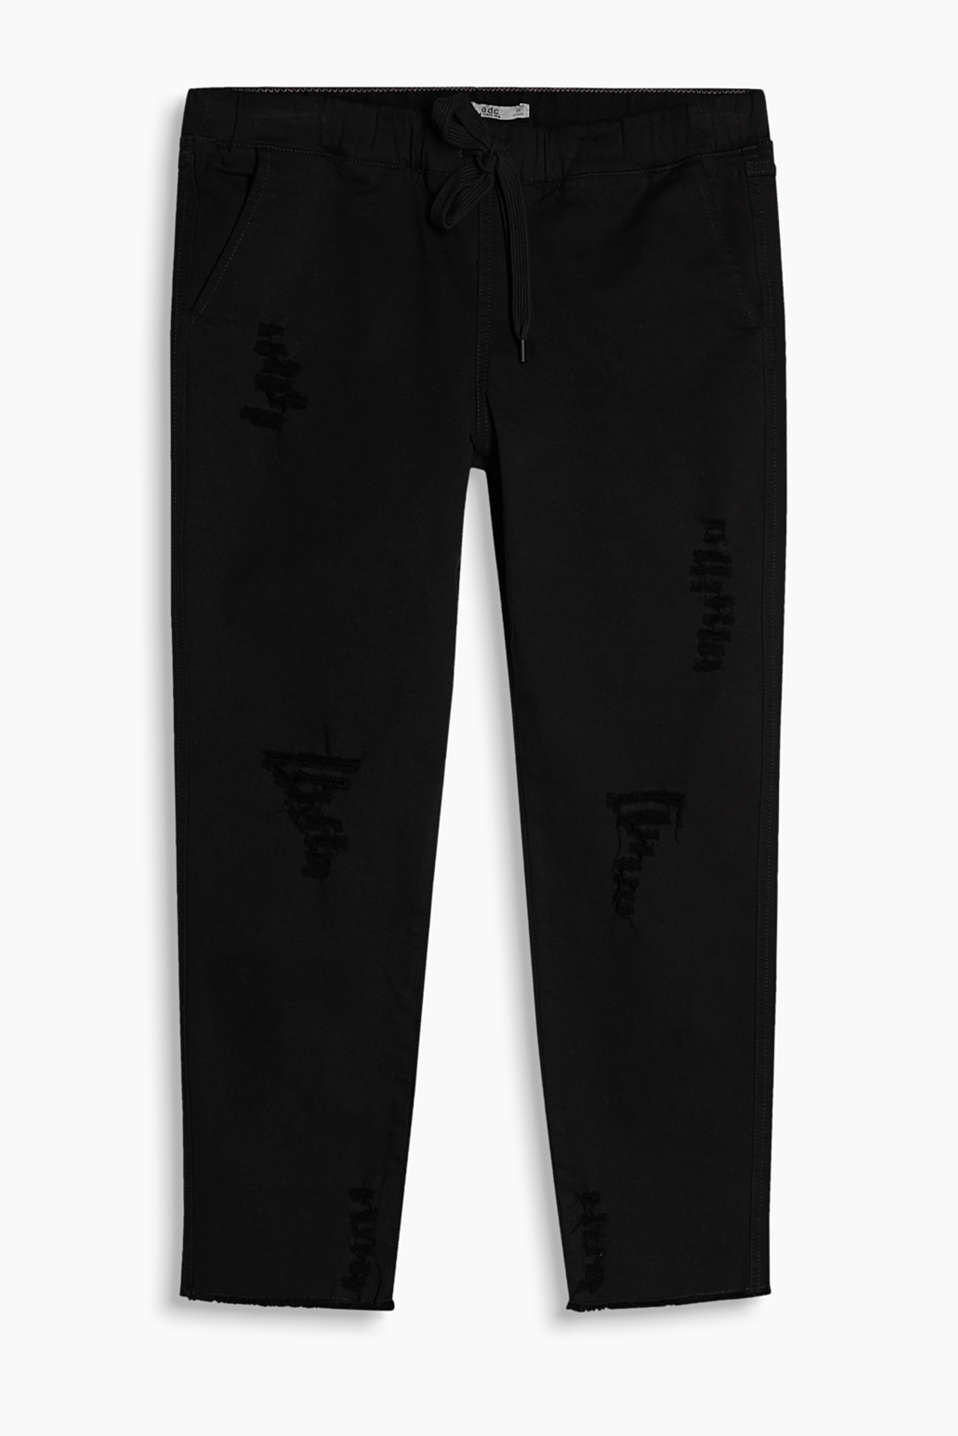 Ankle-length trousers in stretch cotton in a relaxed tracksuit bottom style